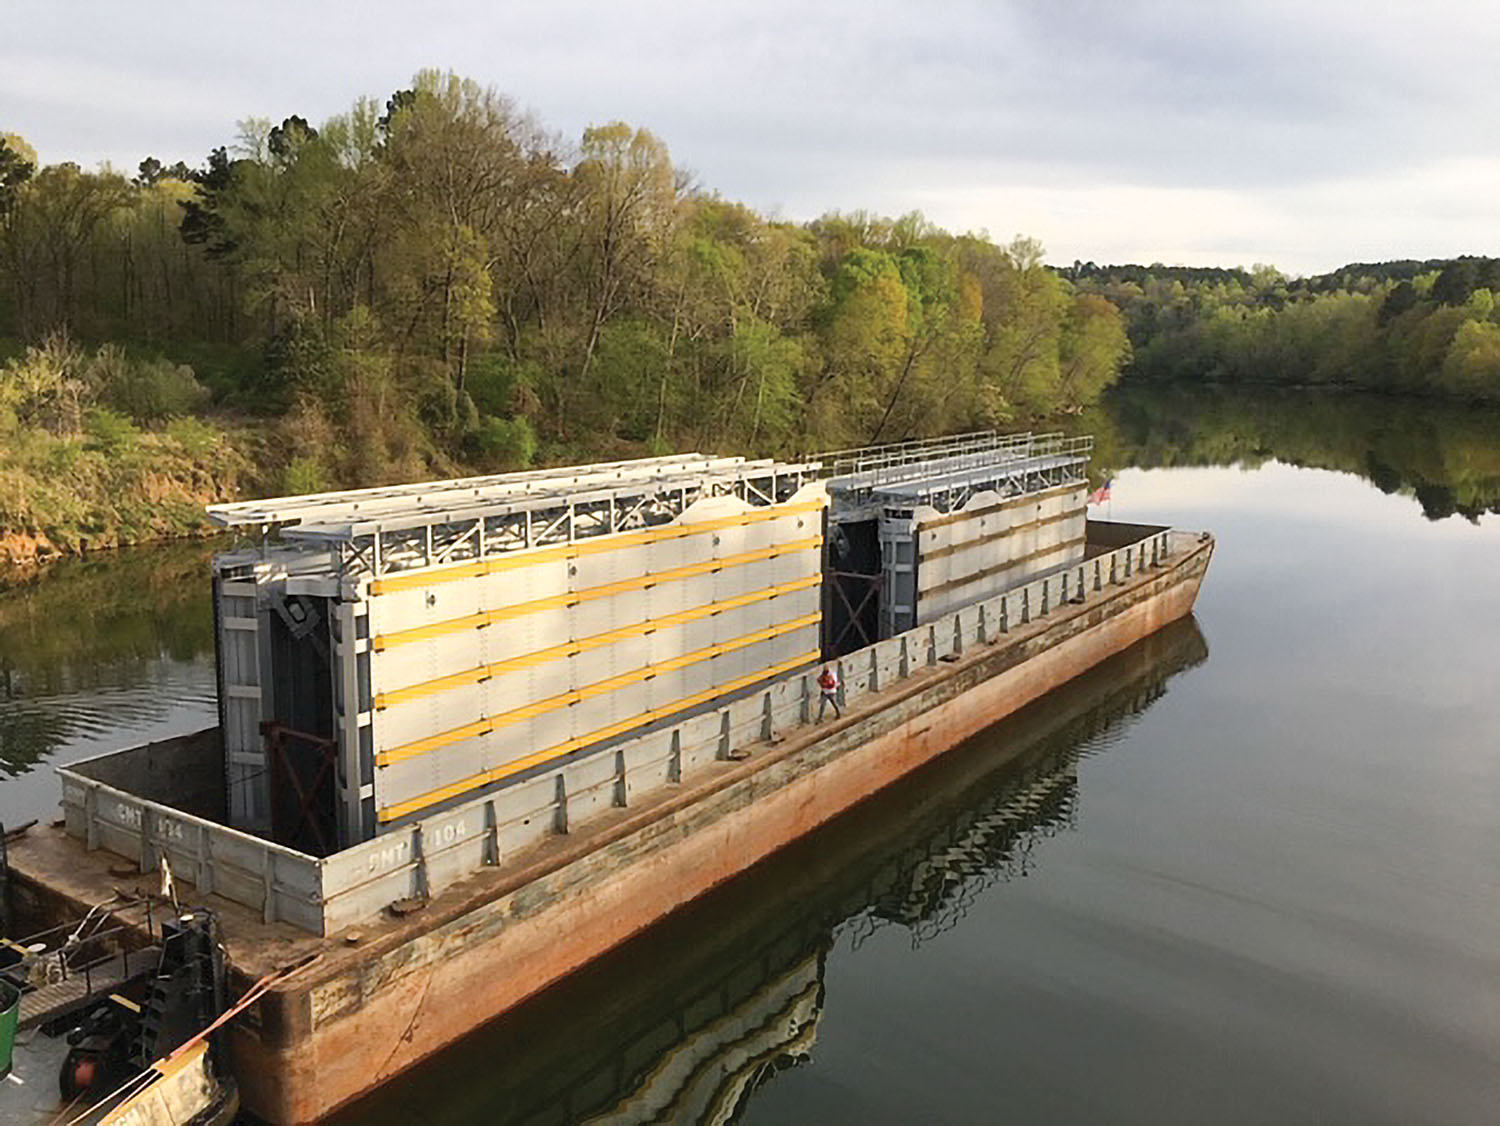 A barge carries new upper and lower gates for Upper Mississippi River Lock 12 on the Black Warrior River near Cordova, Ala. (Photo courtesy of G&G Steel)